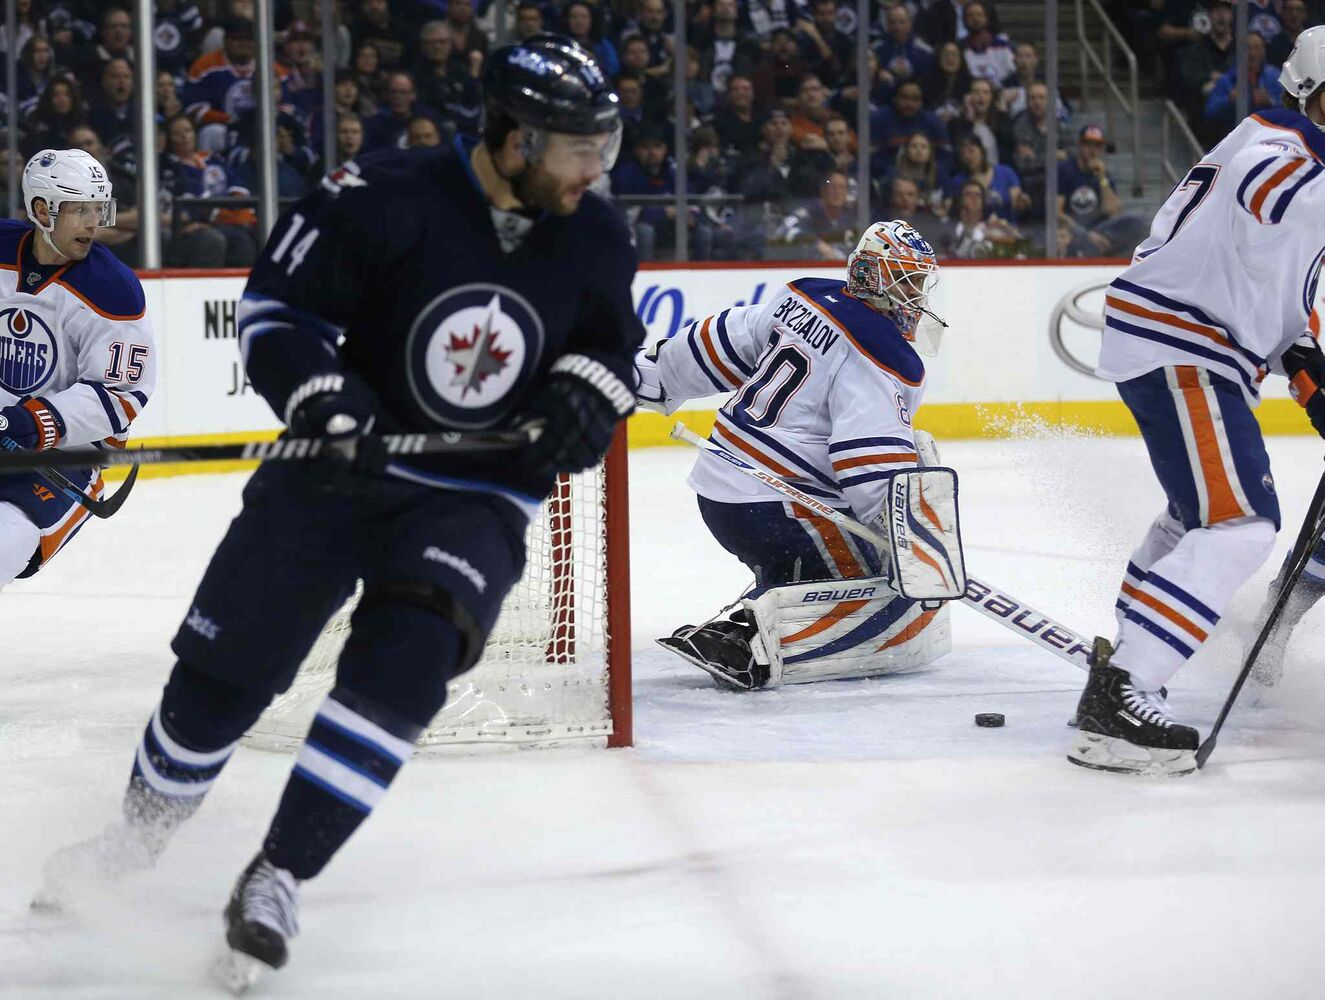 Winnipeg Jets' Anthony Peluso (14) had a shot stopped by Edmonton Oilers' goaltender Ilya Bryzgalov (80) in the second period of Saturday's NHL game at Winnipeg's MTS Centre. (Trevor Hagan / Winnipeg Free Press)